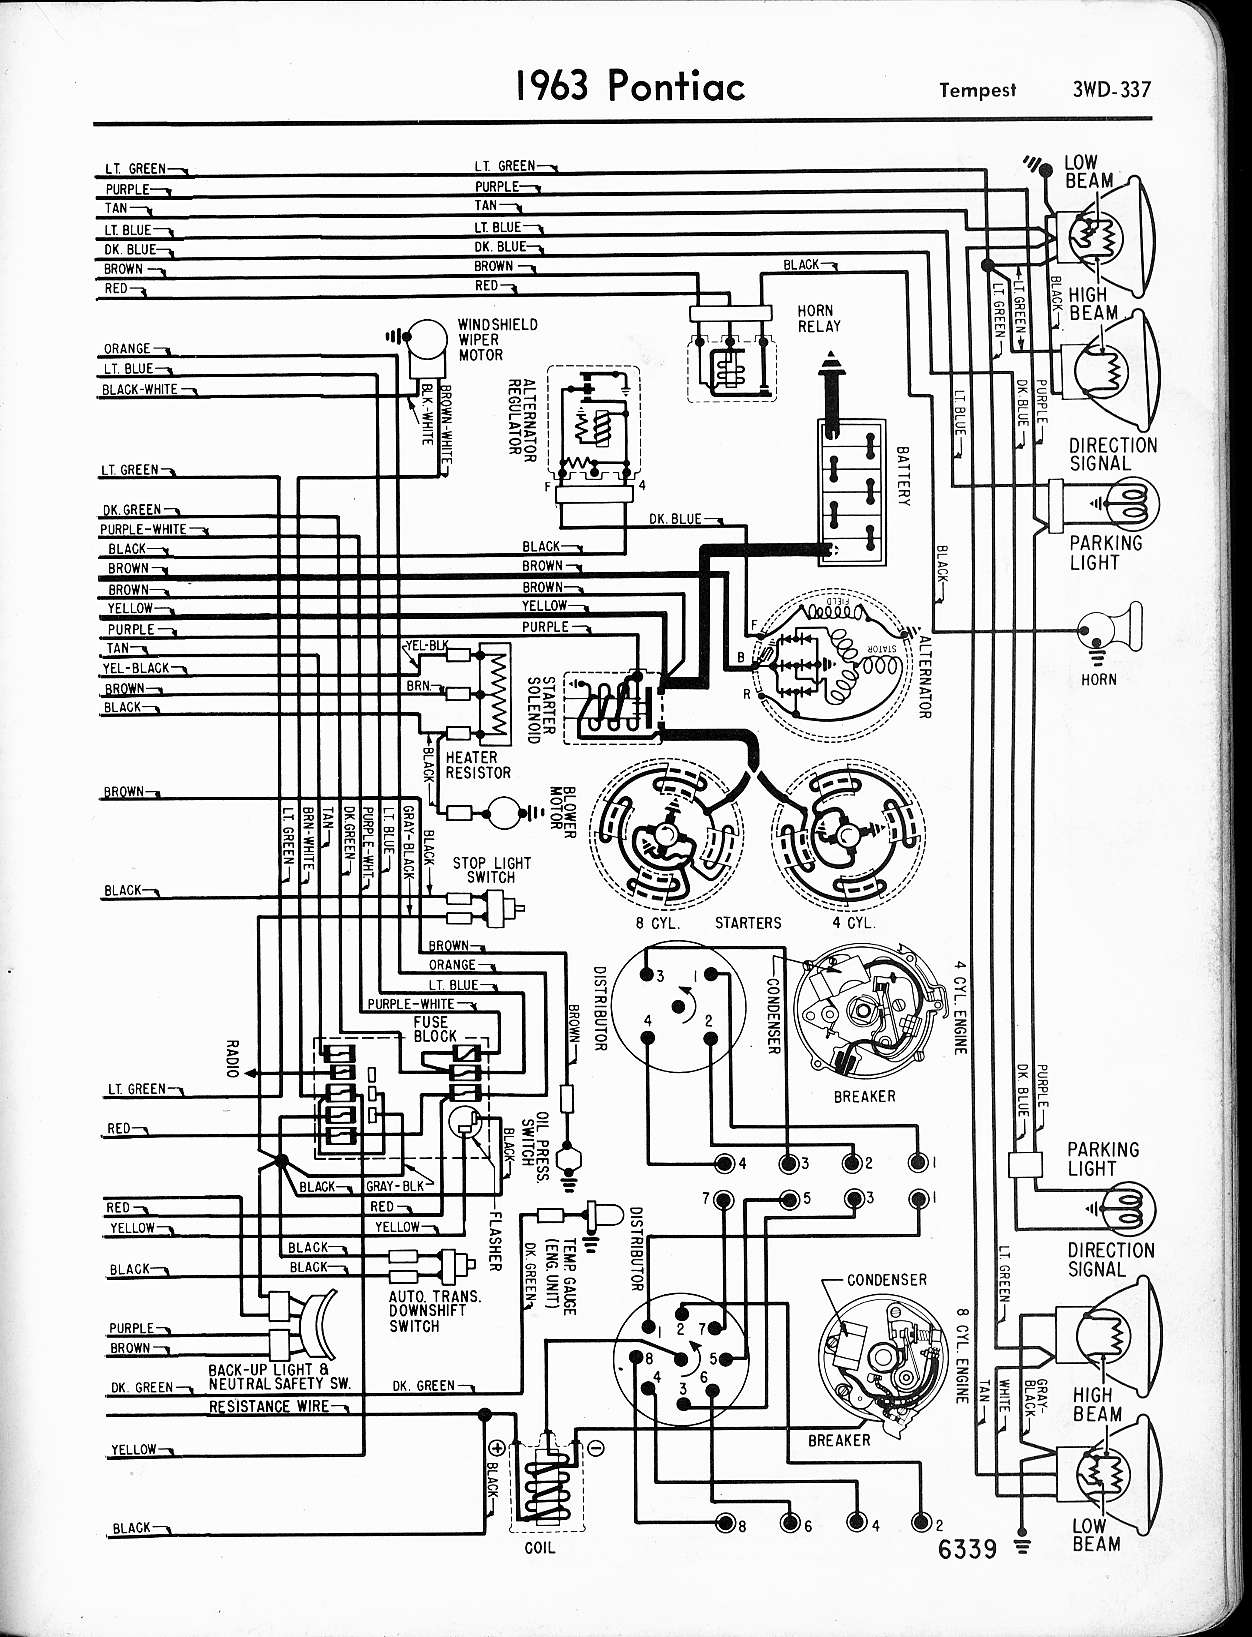 Pleasant Chevelle Horn Relay Wiring Free Download Wiring Diagrams Pictures Mandiz Mohammedshrine Wiring Diagrams Mandizmohammedshrineorg